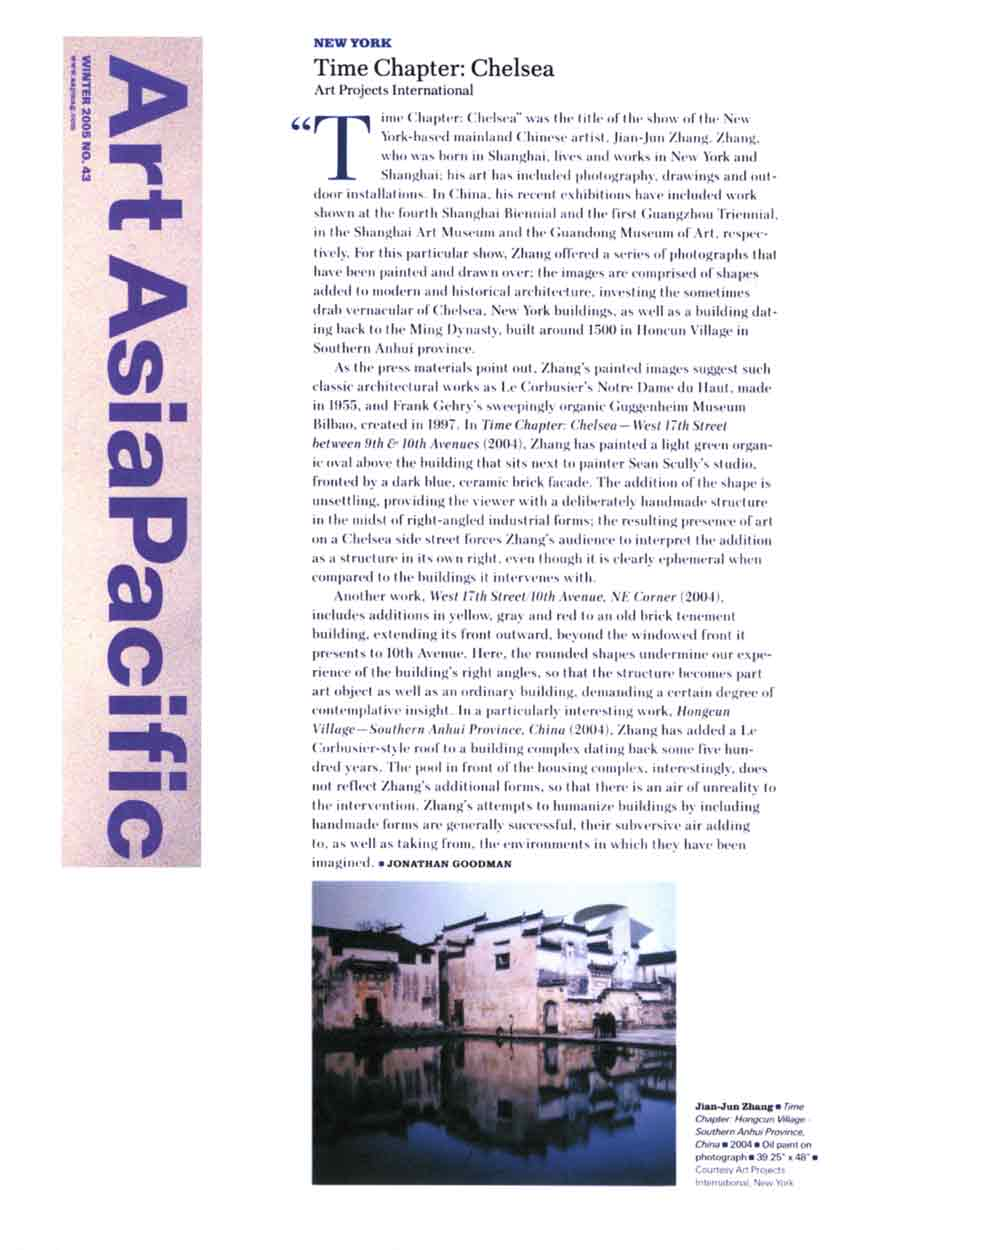 Time Chapter: Chelsea: Art Projects International, review